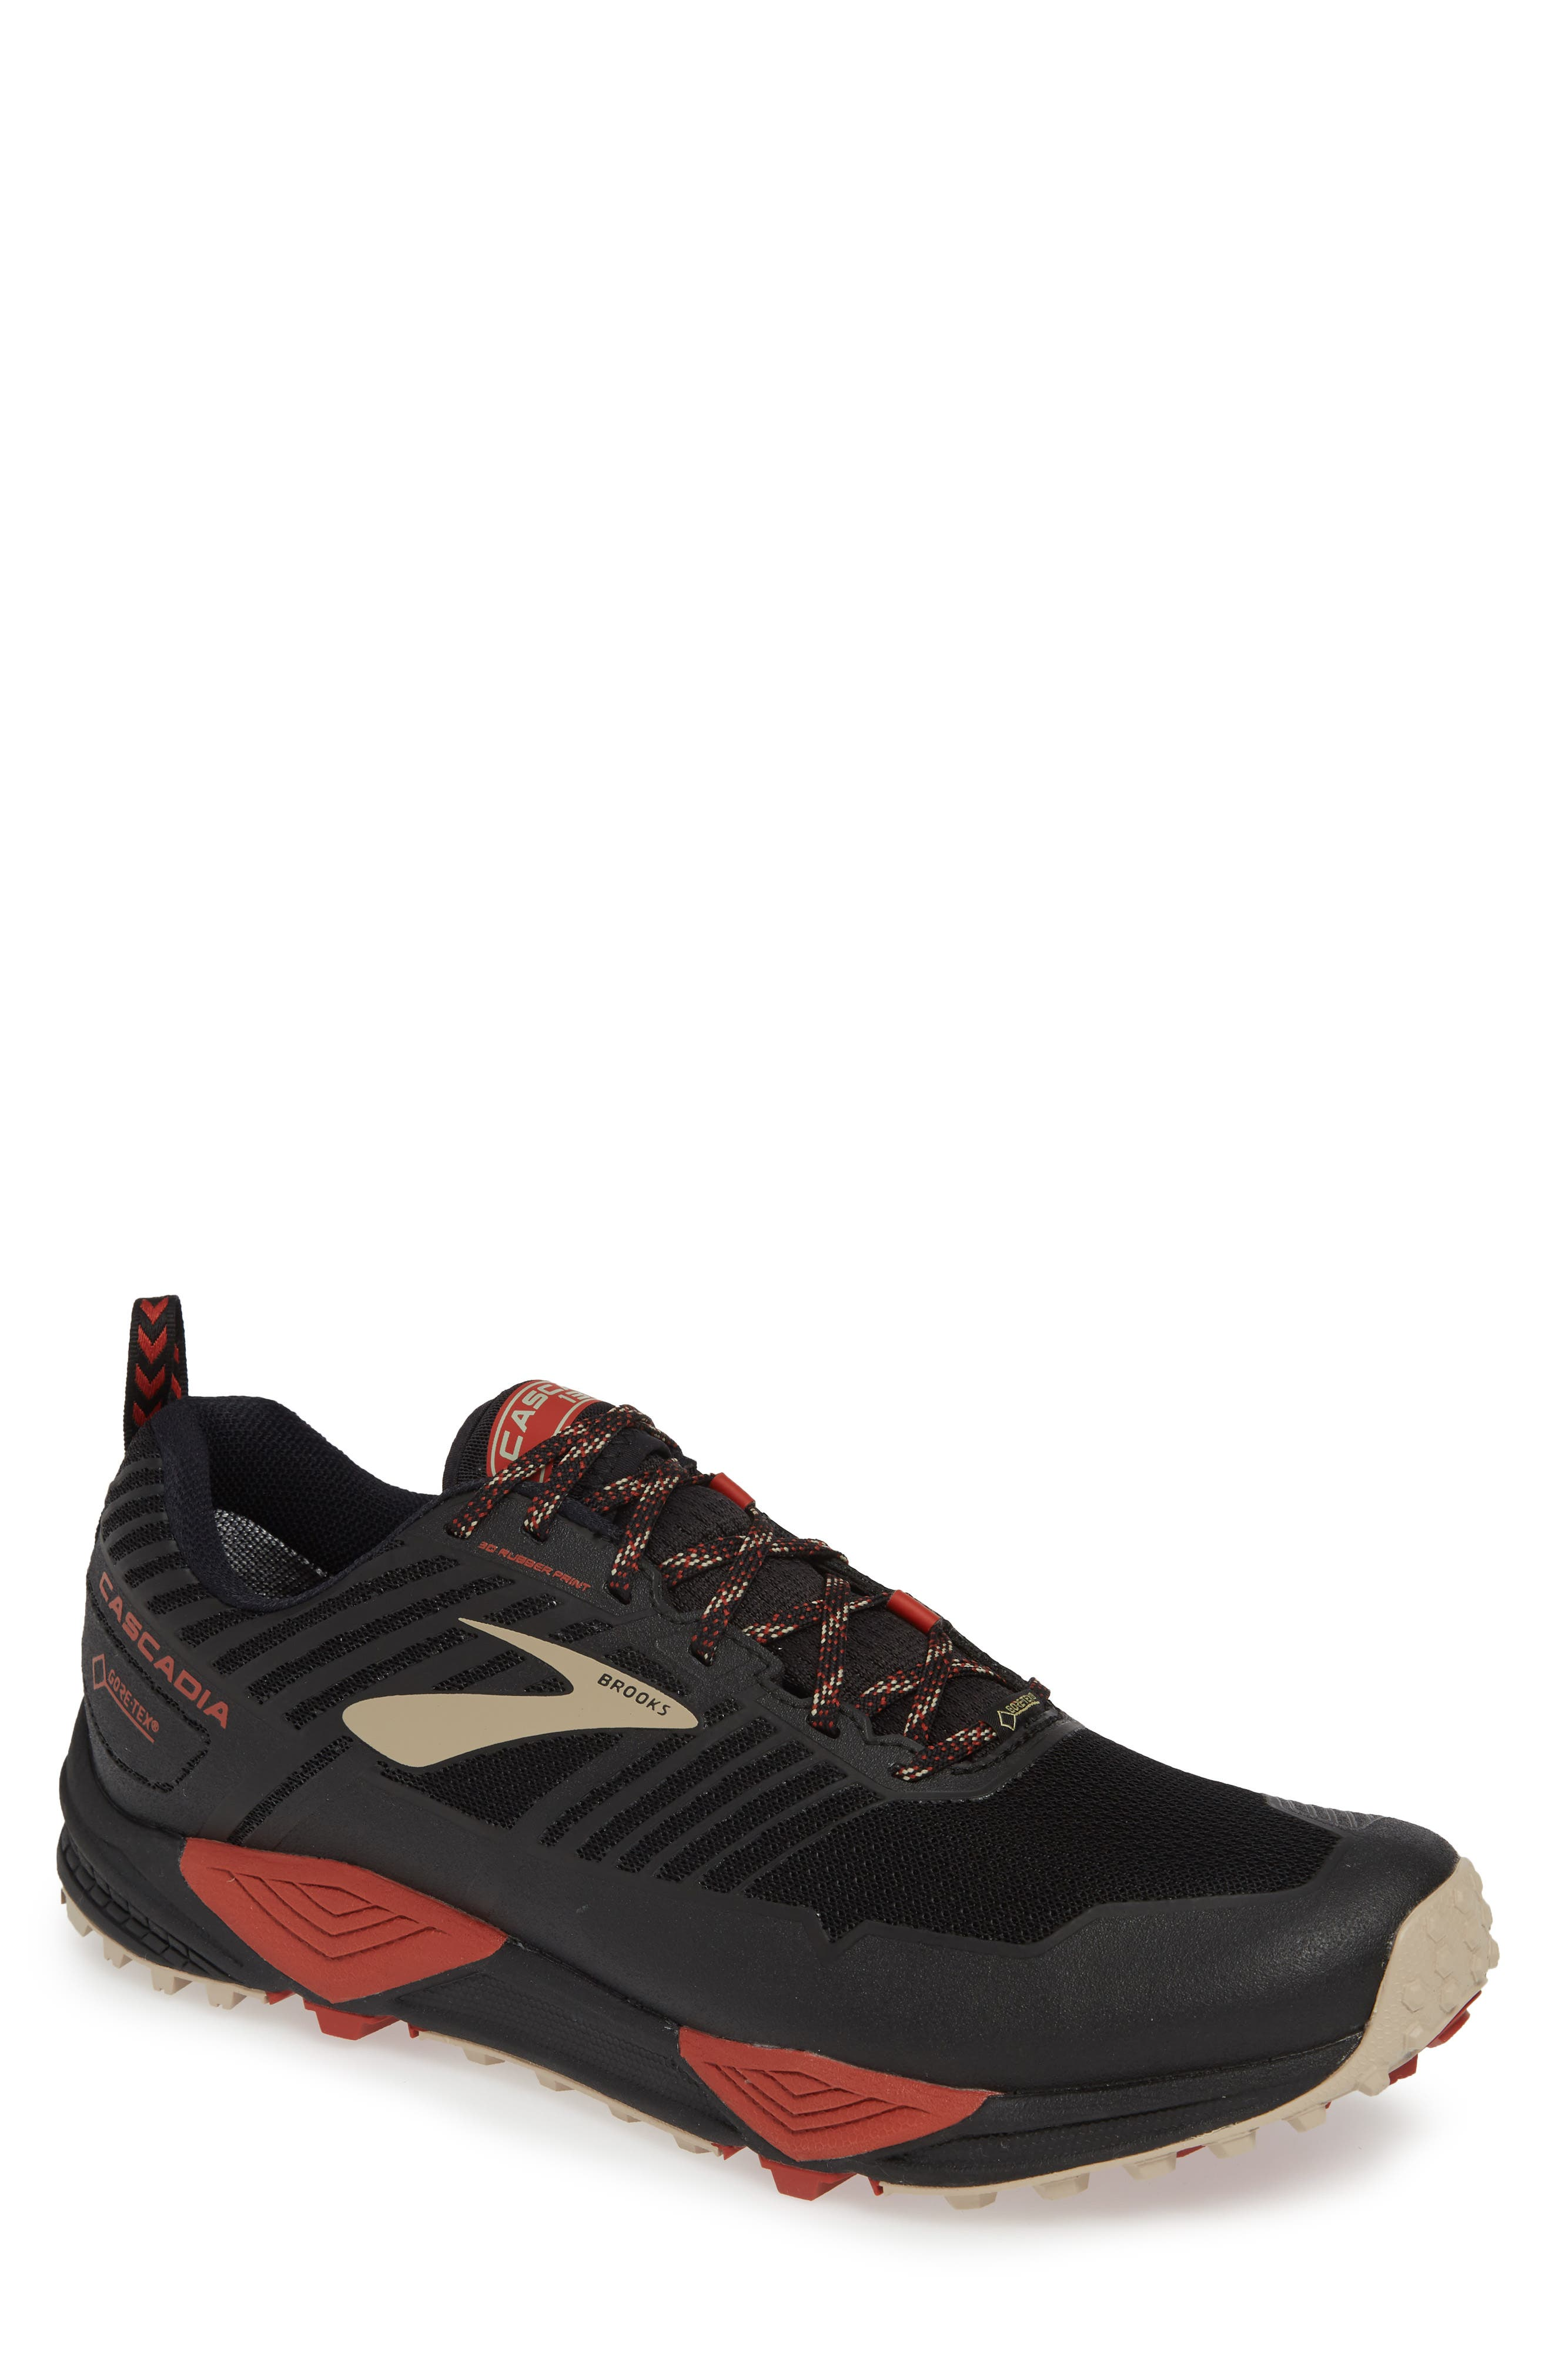 81f041fbc825 UPC 011020000086 product image for Men s Brooks Cascadia 13 Gtx Gore-Tex Waterproof  Trail Running